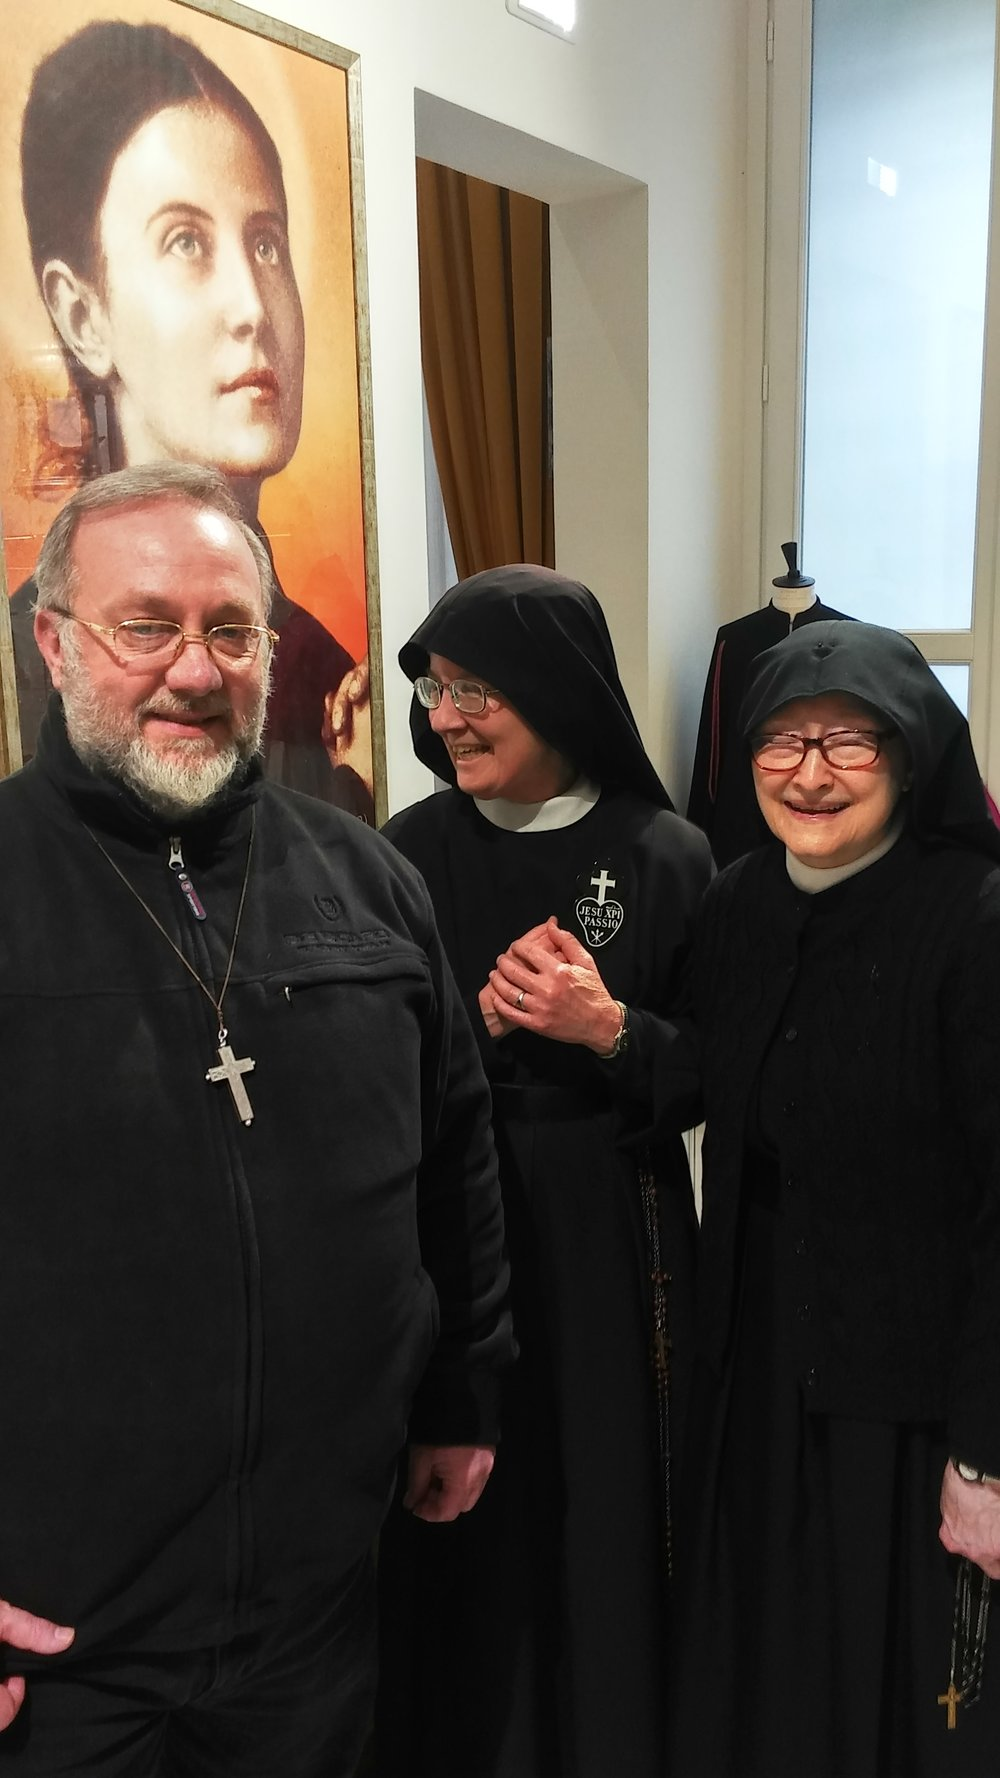 Fr. Giovanni Zubiani, Sr. Mary Veronica, and Mother Catherine Marie back in Lucca, Italy after the General Chapter's conclusion.